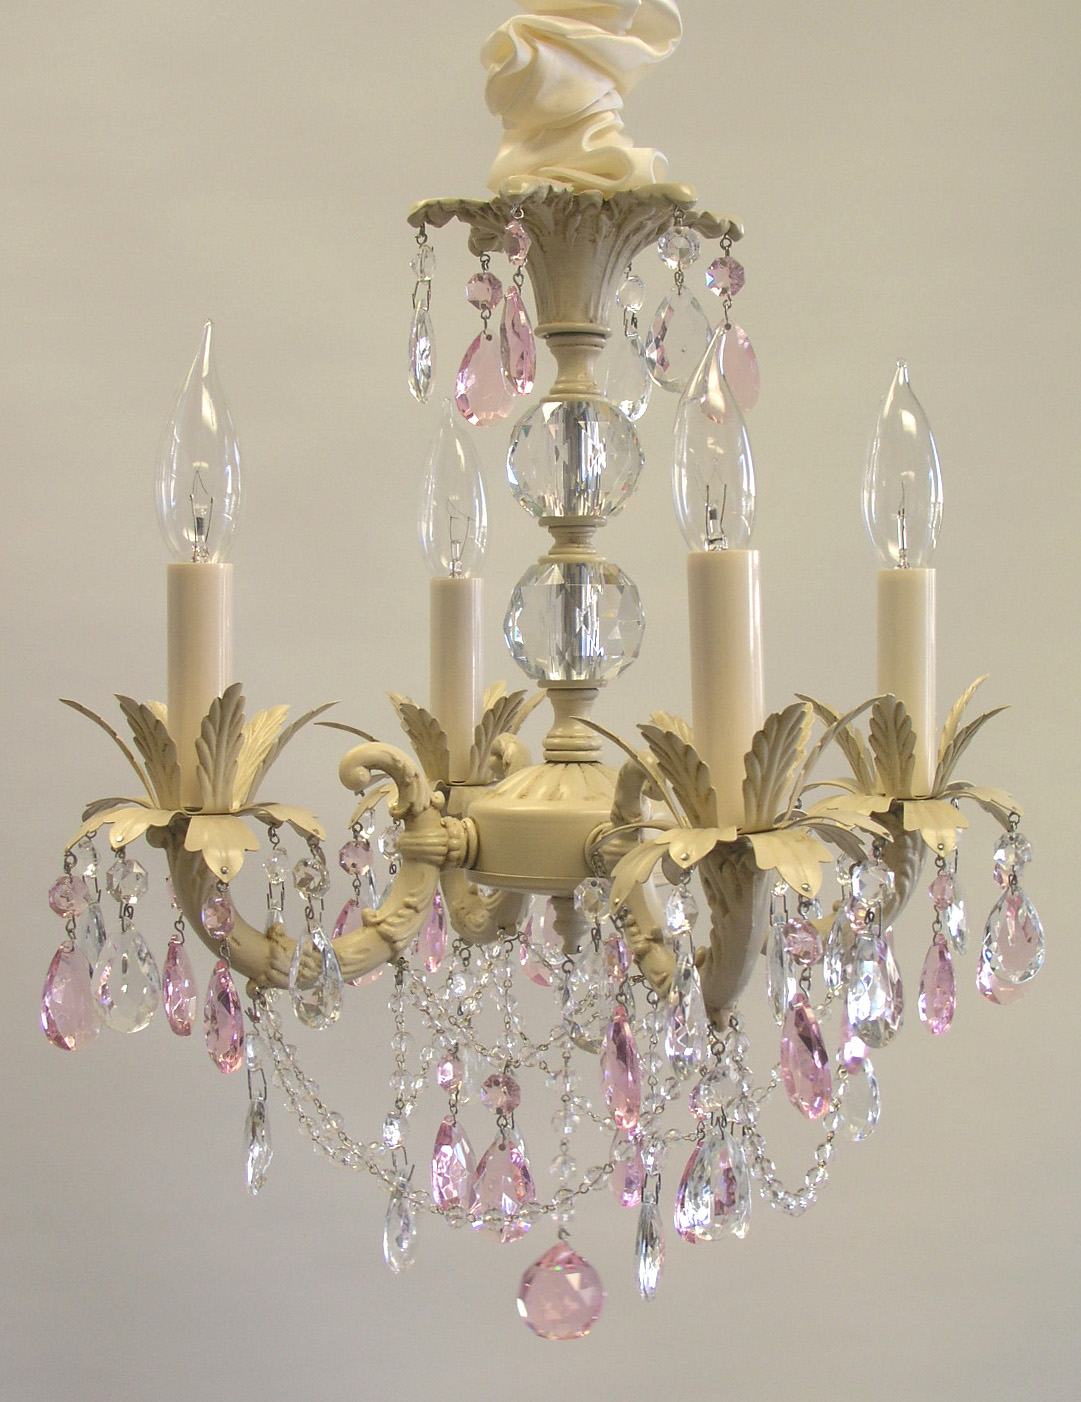 I lite 4 u shabby chic style mini chandeliers lighting p10101491g 380022 bytes arubaitofo Choice Image